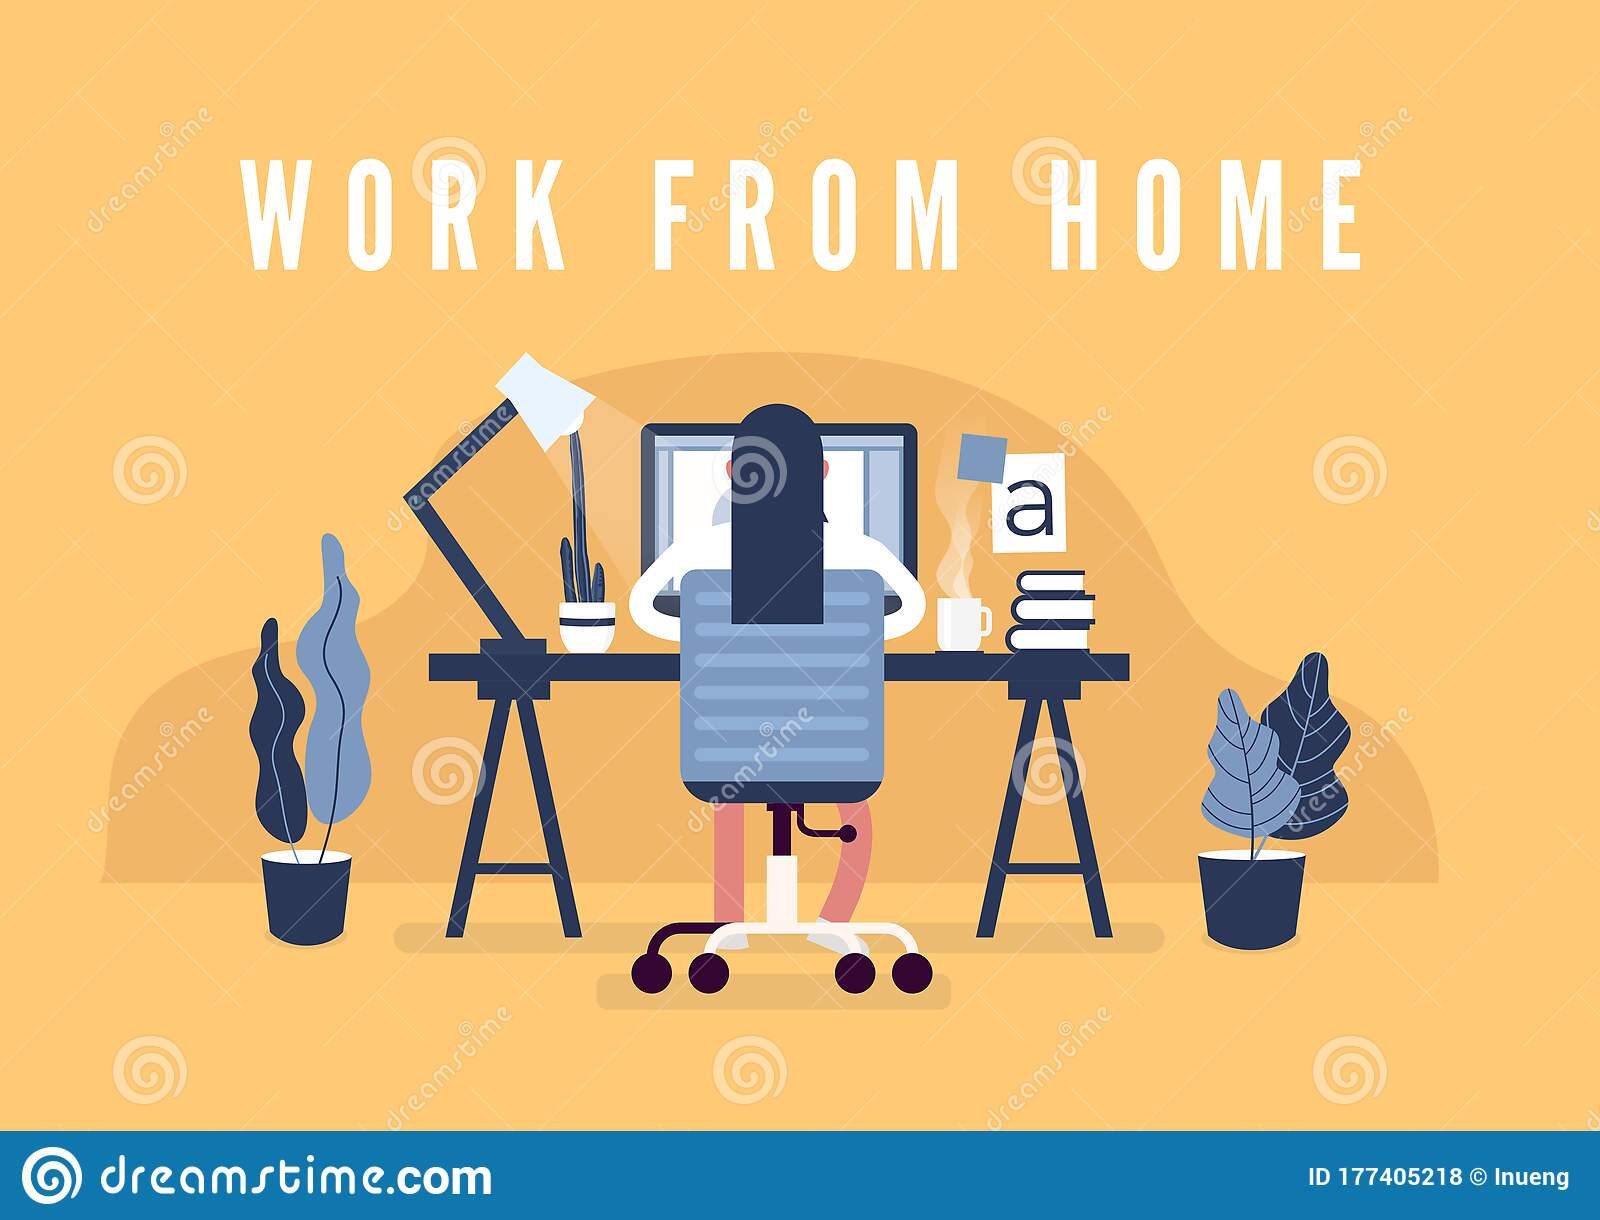 Work From Home Concept Graphic Design Workspace Designers Sitting On The Desk Stock Vector Illustration Of Character Company 177405218